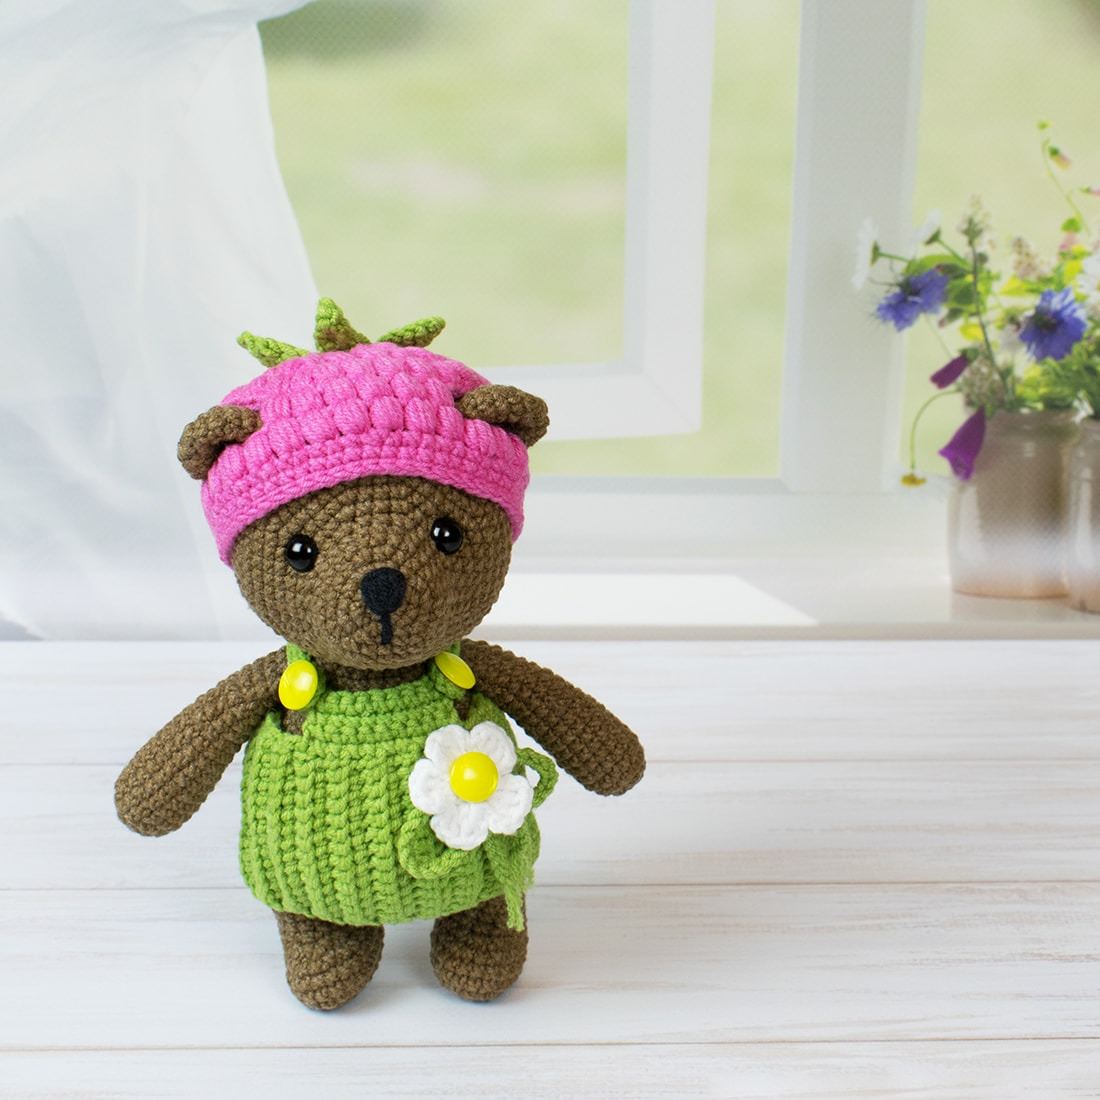 Amigurumi Today - Free amigurumi patterns and amigurumi